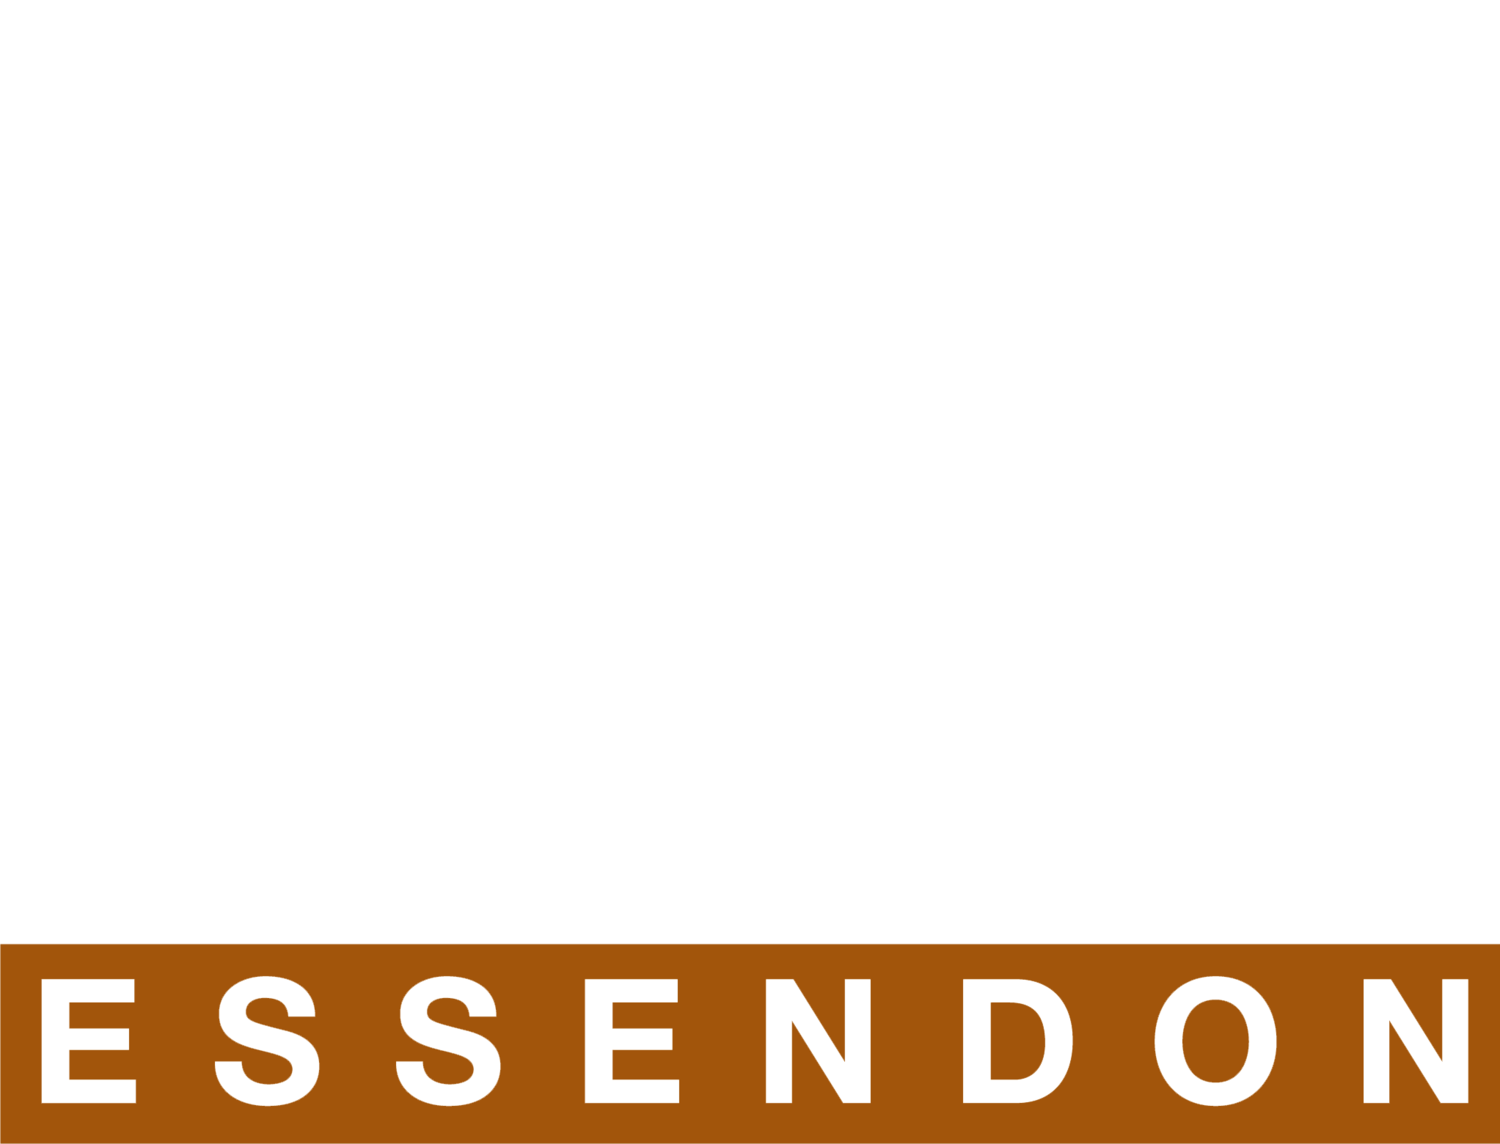 Royal Hotel, Essendon, VIC